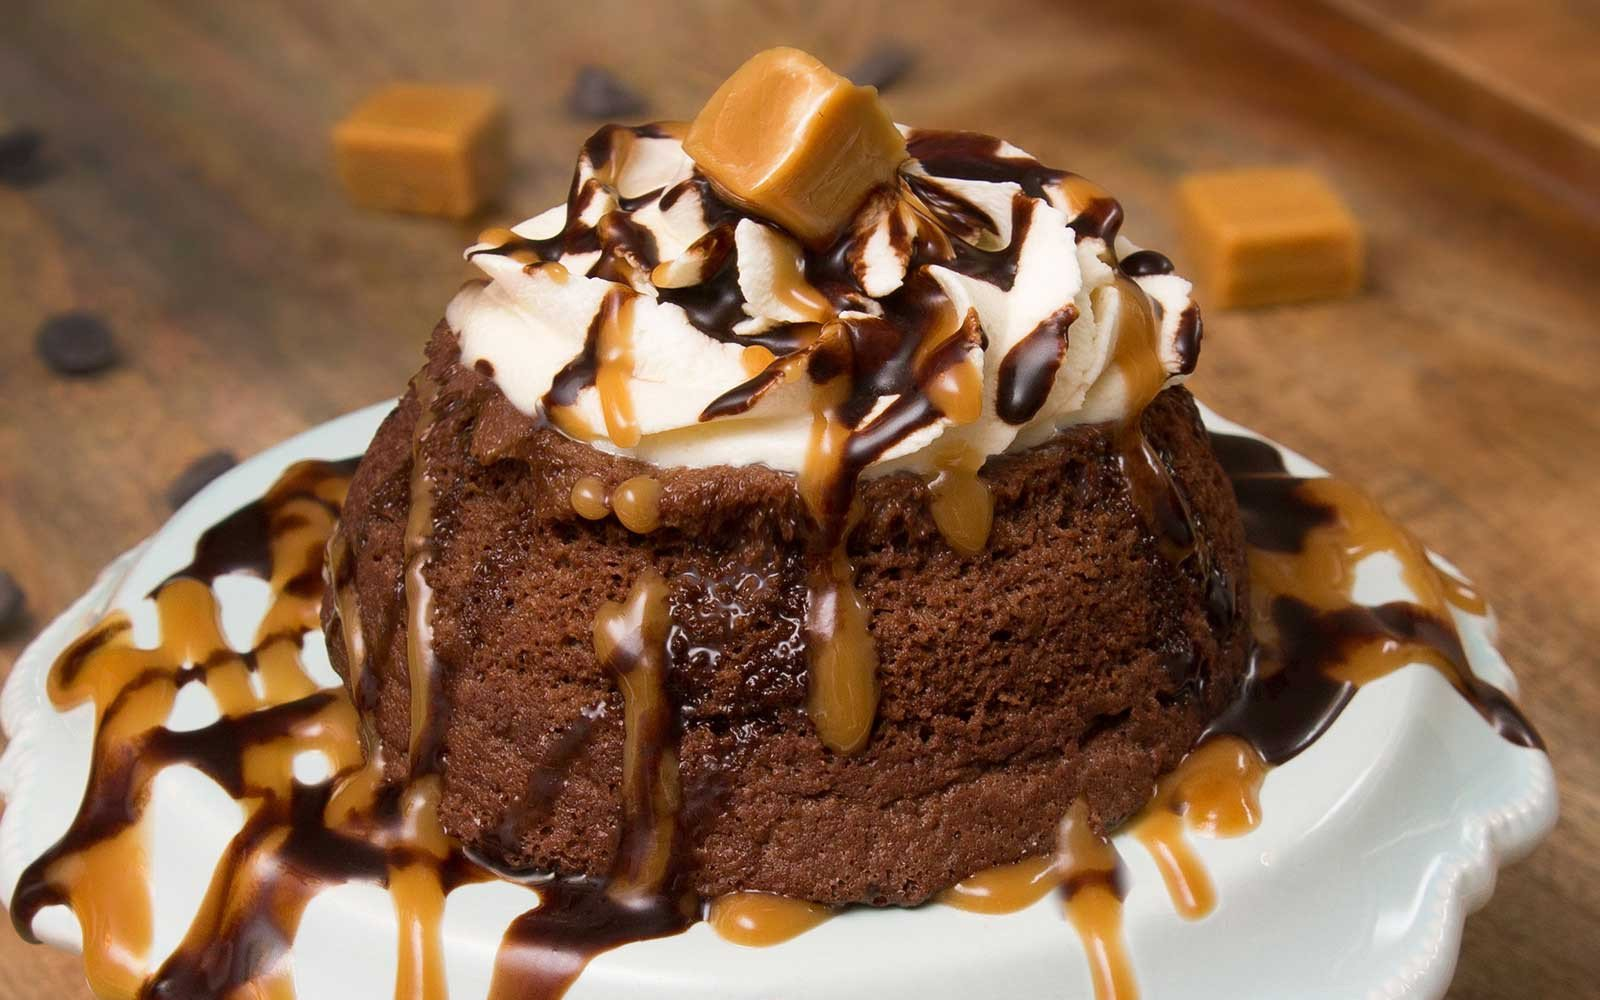 Delicious Low Sugar Chocolate Caramel Mug Cake